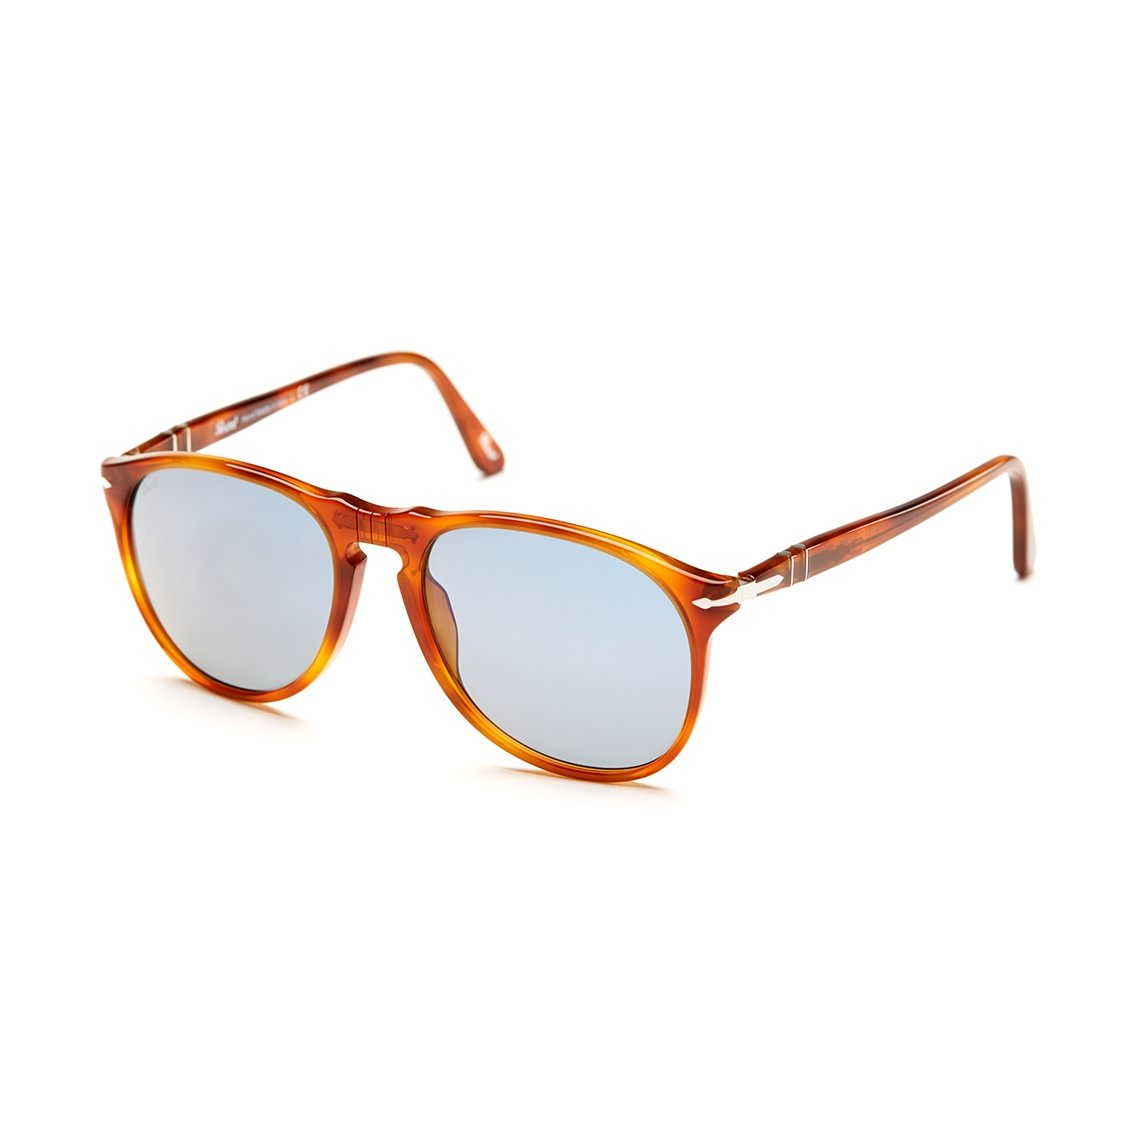 Persol 9649-S 96/56 55-18